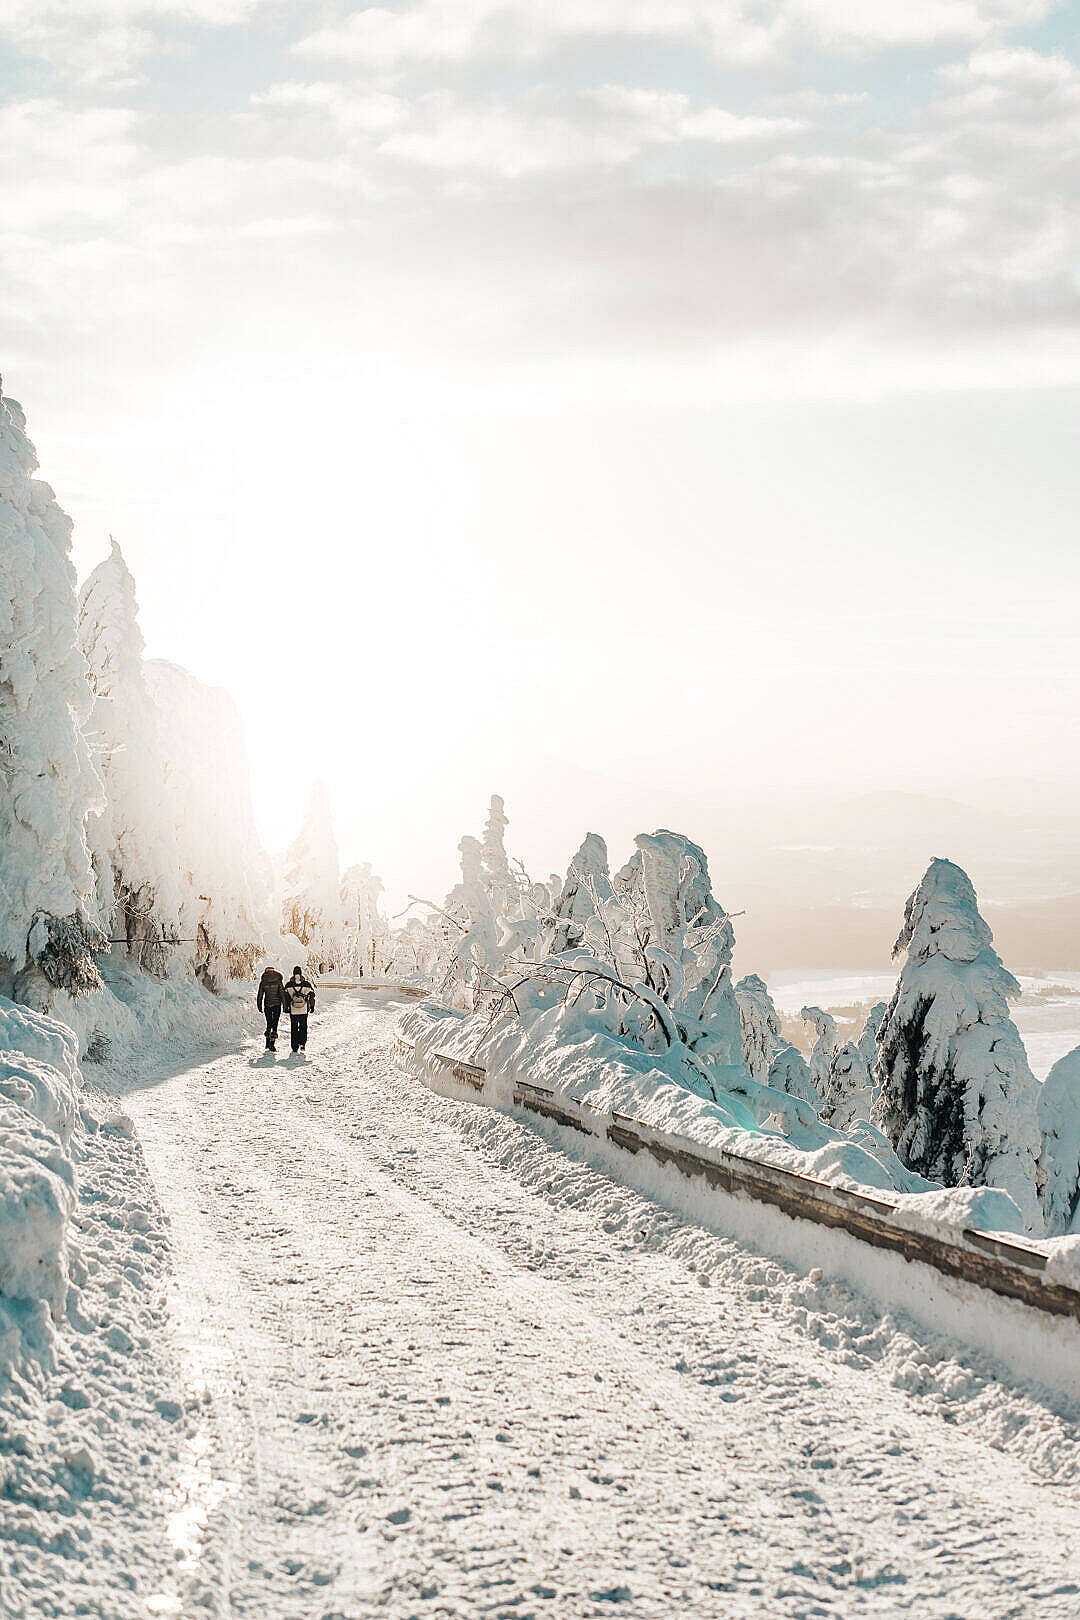 Download Two Persons Walking on Snow Covered Road FREE Stock Photo